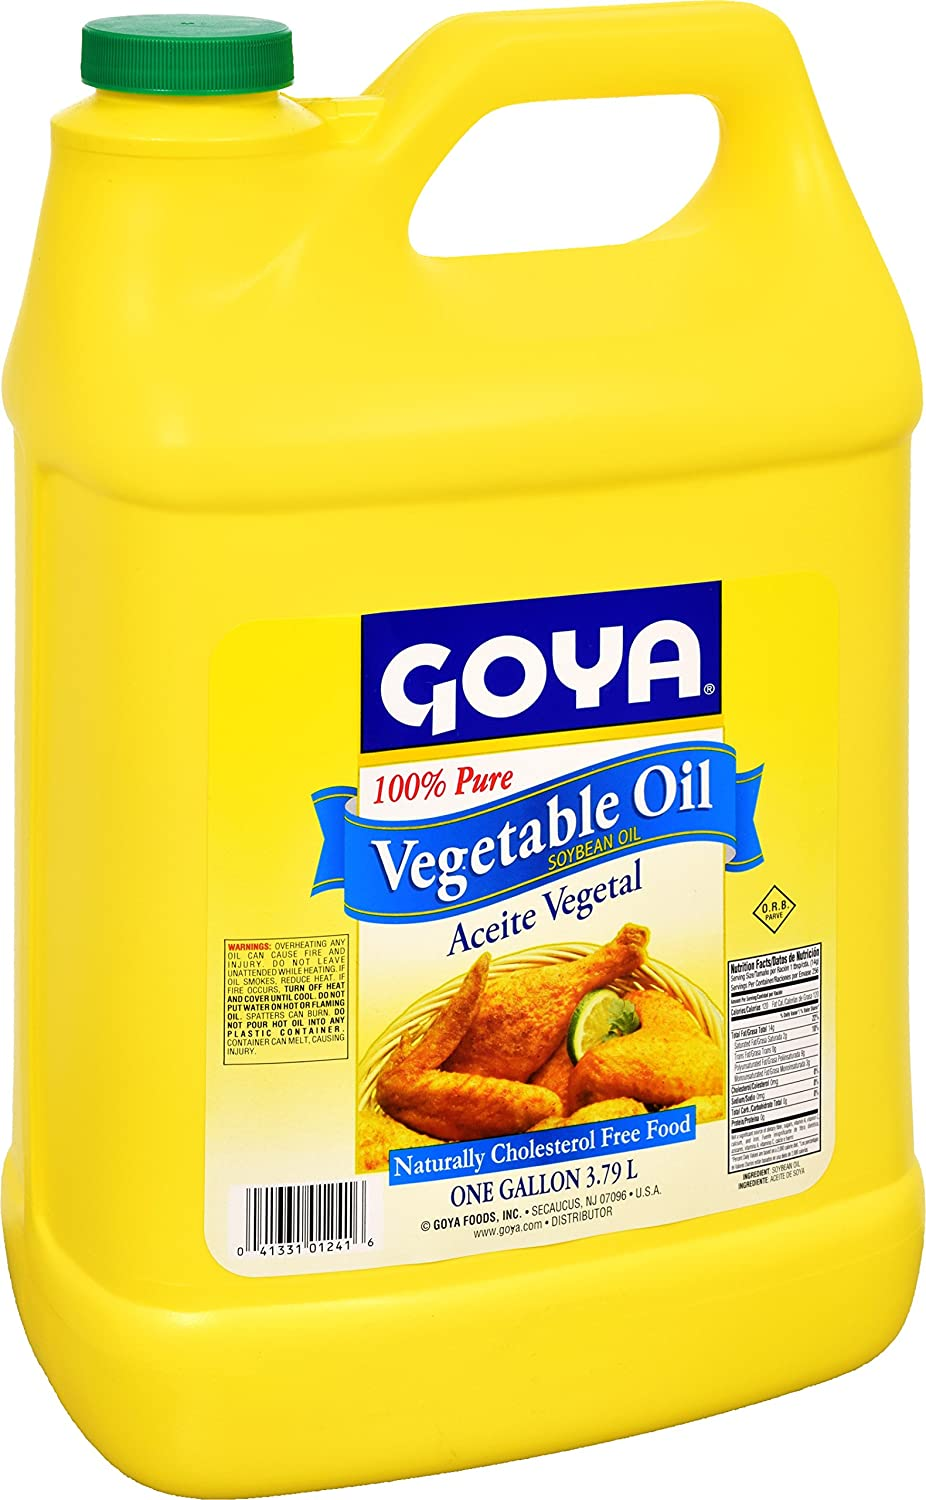 Amazon.com : Goya Foods Vegetable Oil, 128 Fluid Ounce (pack of 6) : Gourmet Oils : Grocery & Gourmet Food